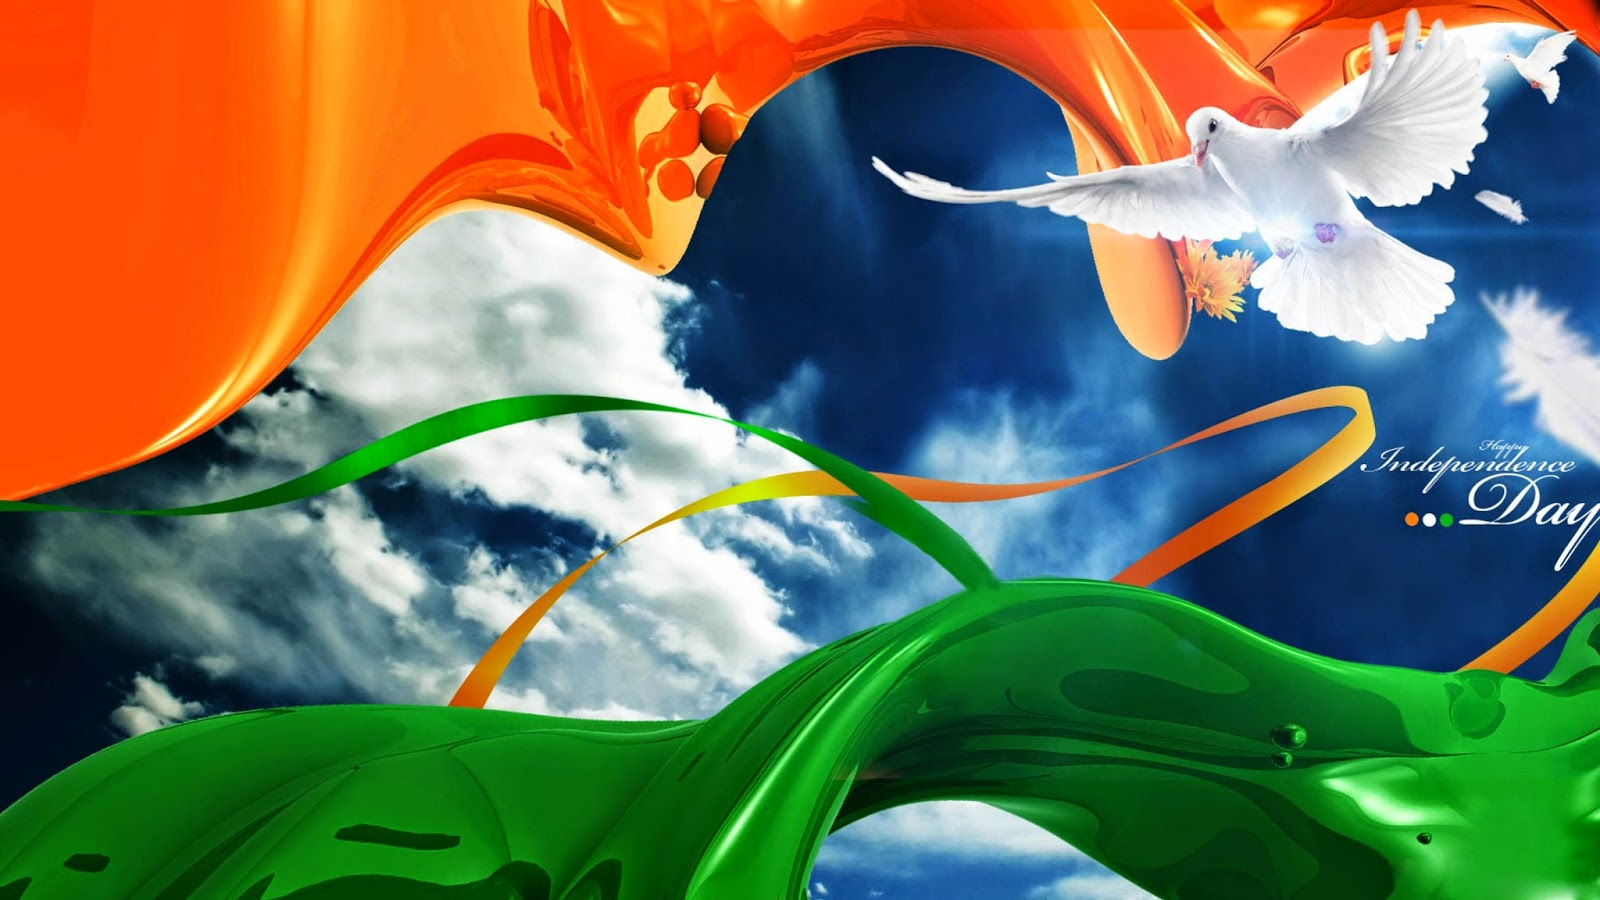 Happy independence day 2014 image